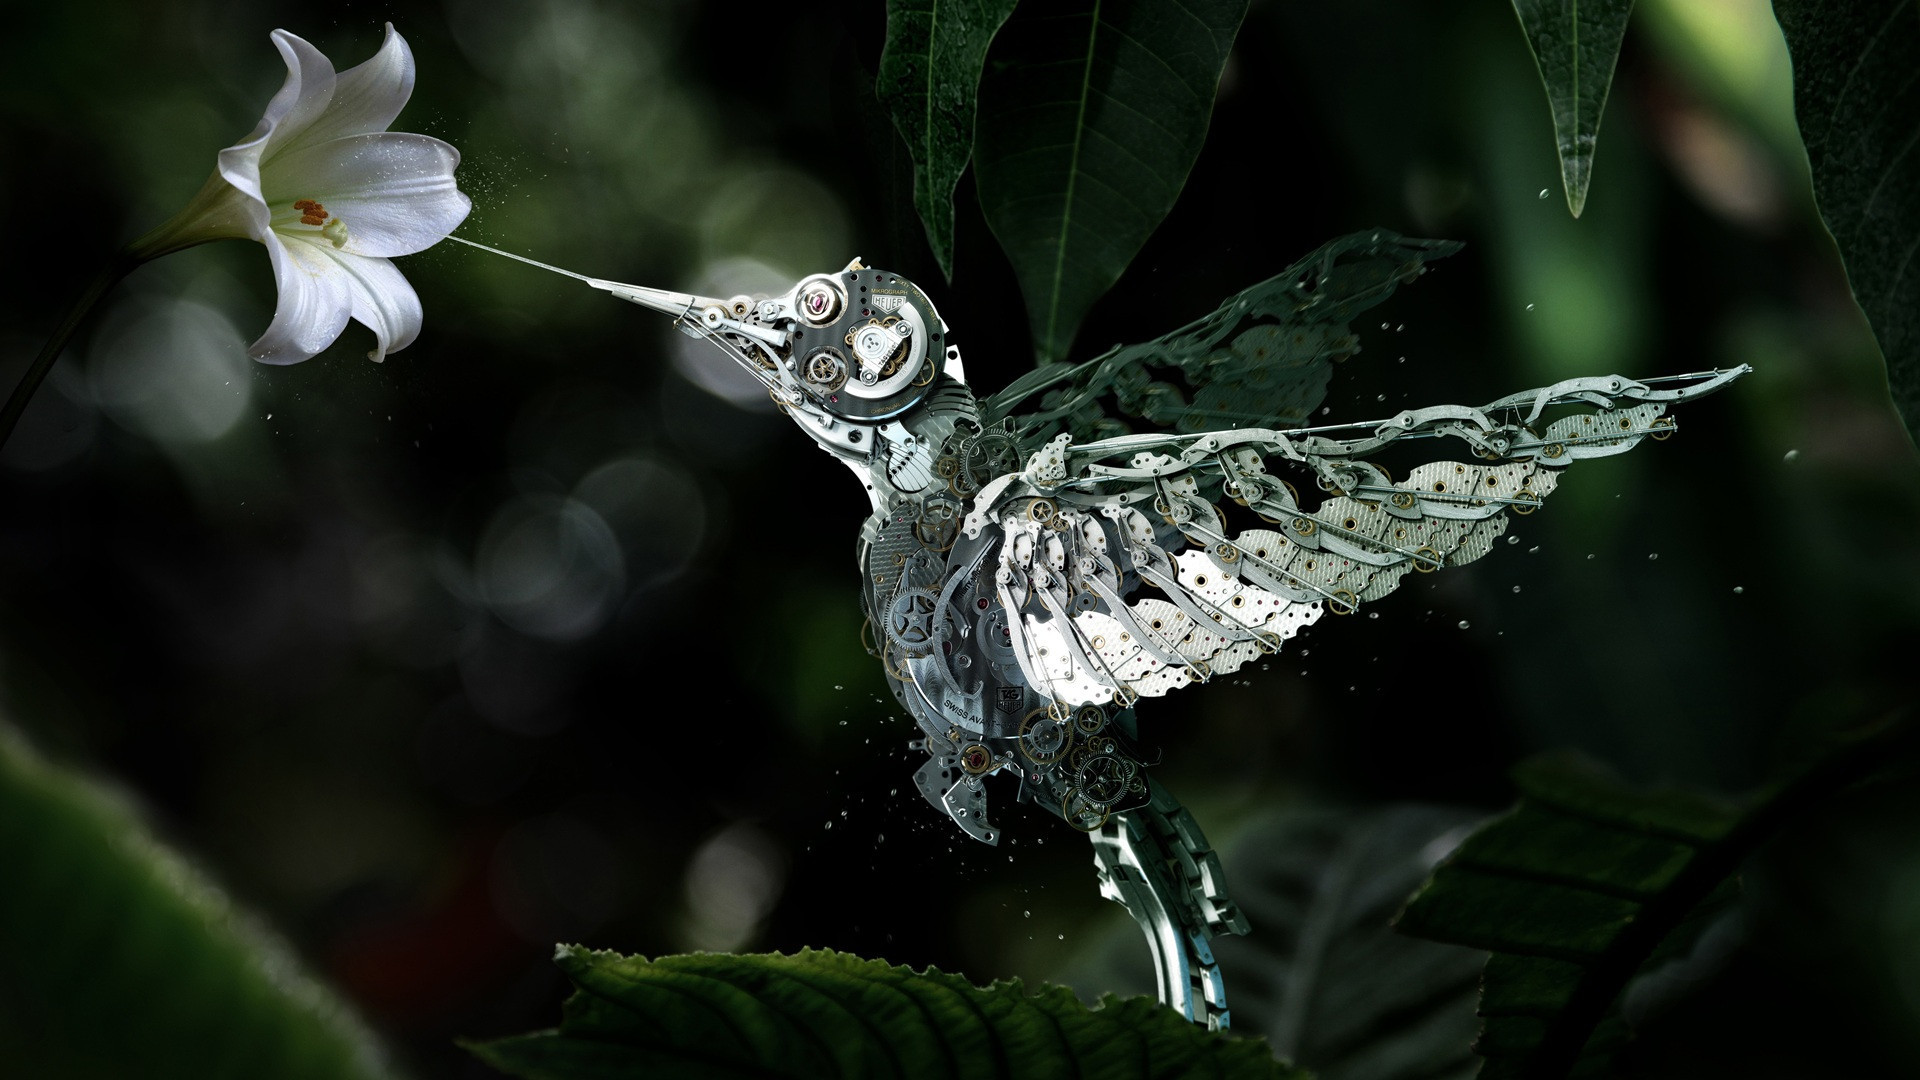 A-beautiful-mechanical-hummingbird-x-wallpaper-wp5203652